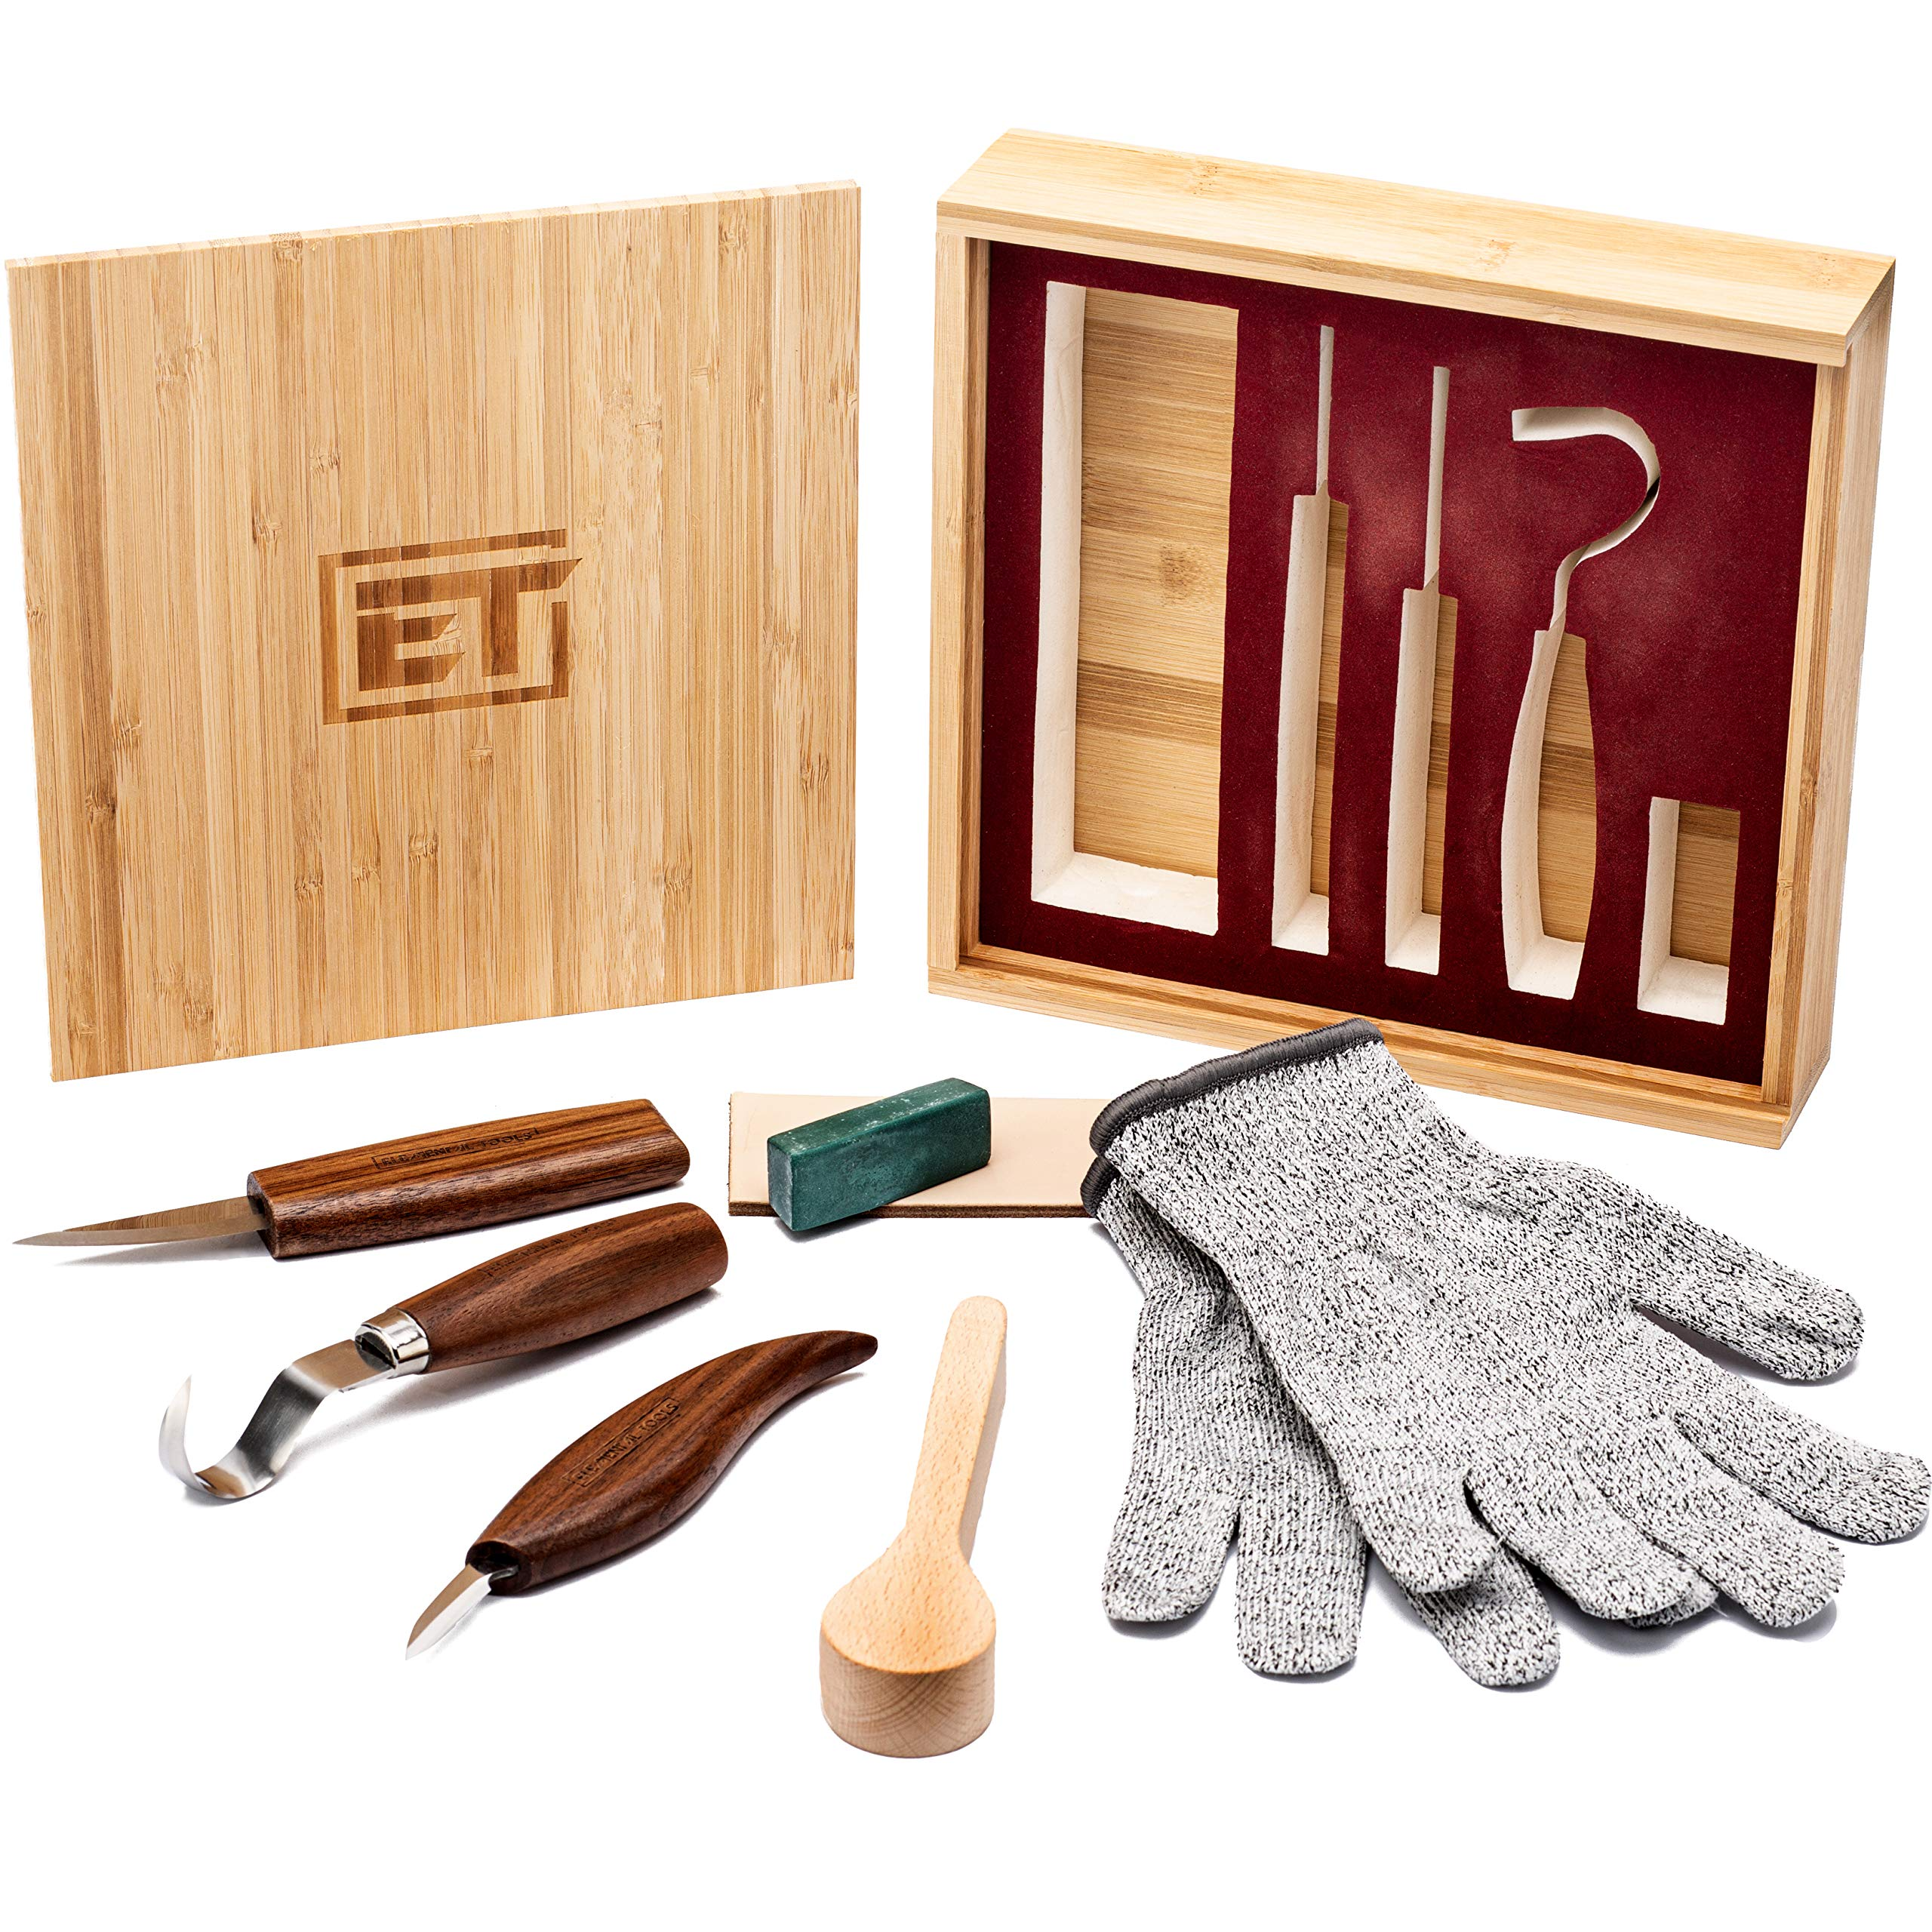 Elemental Tools 9pc Wood Carving